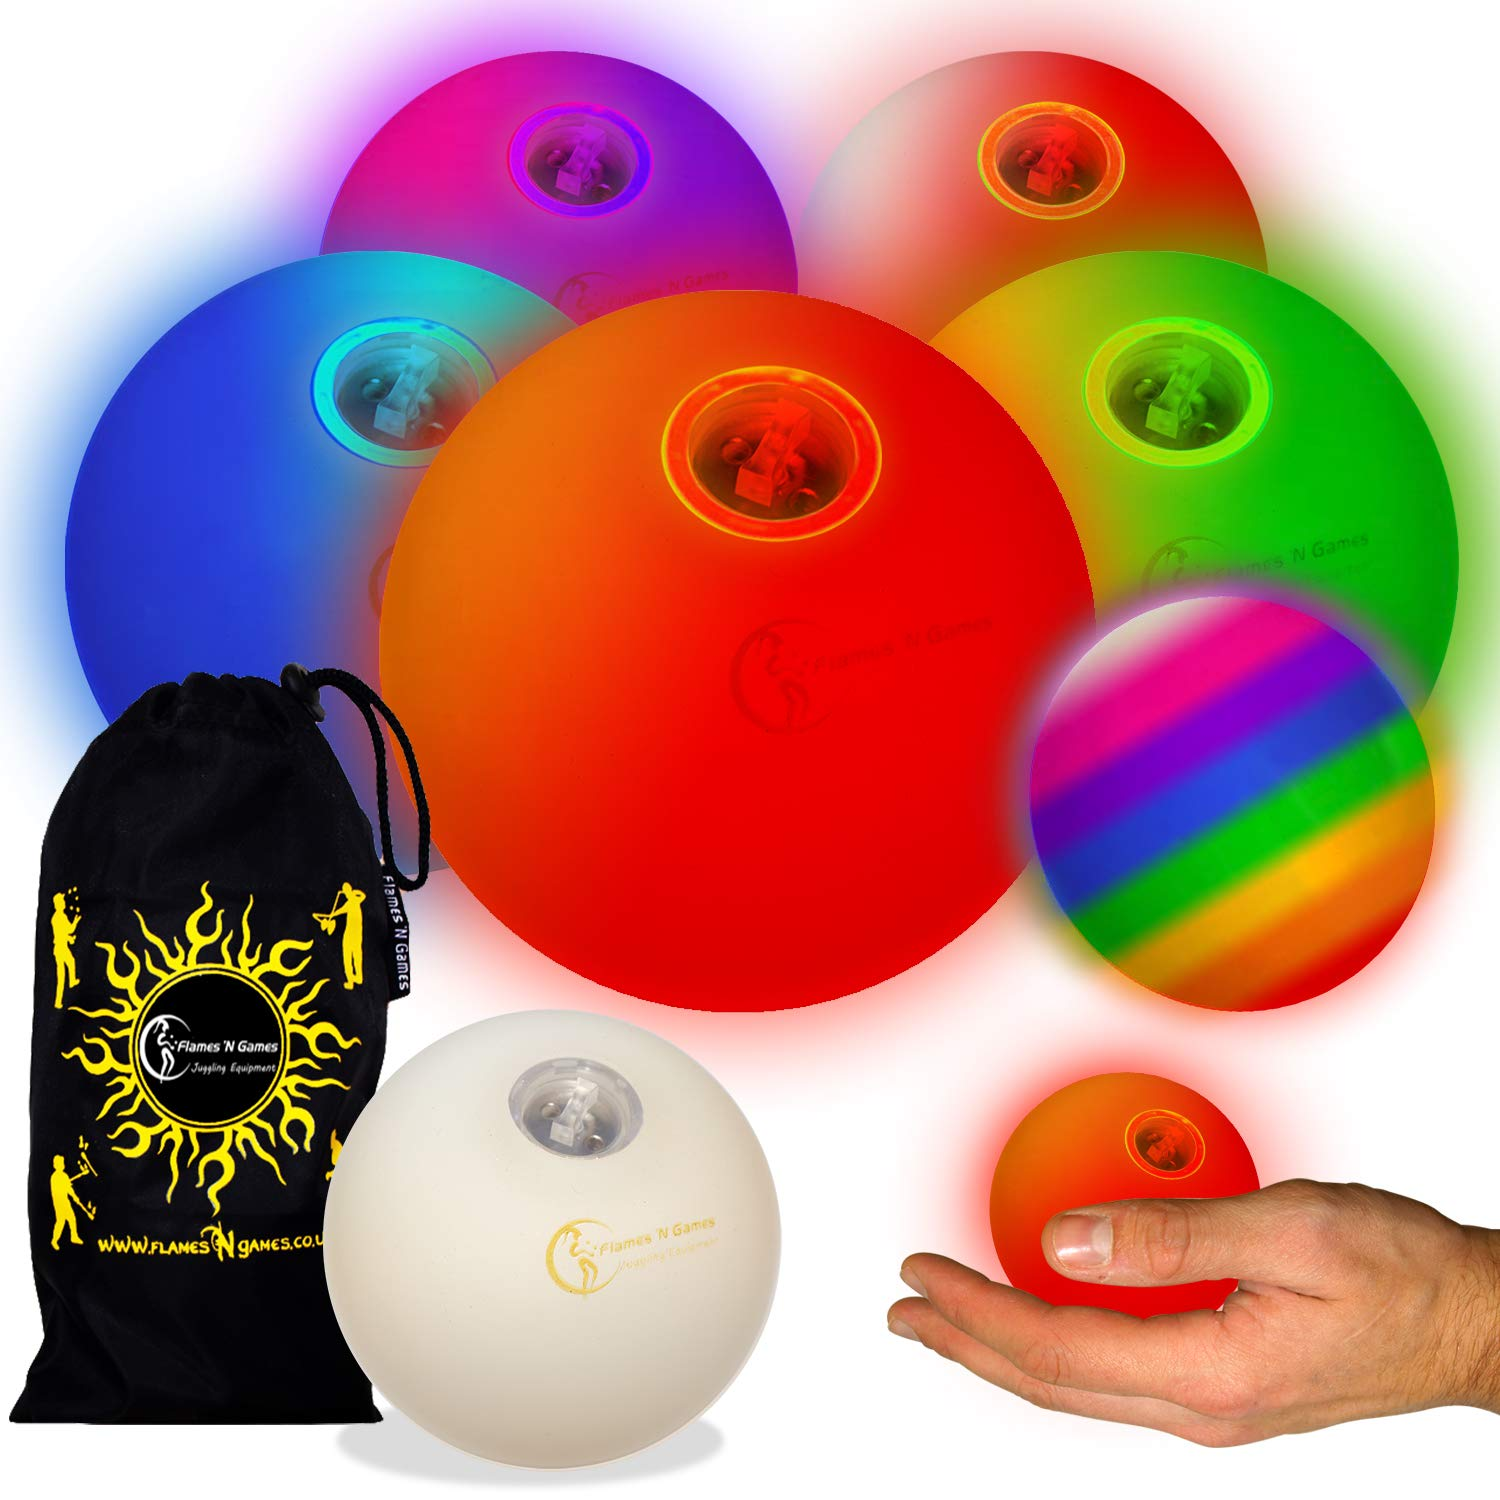 Flames N Games Pro LED Glow Juggling Balls 5X (Slow Fade Rainbow Effect) Ultra Bright Battery Powered Glow LED Juggling Ball Set with Travel Bag. (Set of 5) by Flames N Games Juggling Ball Sets